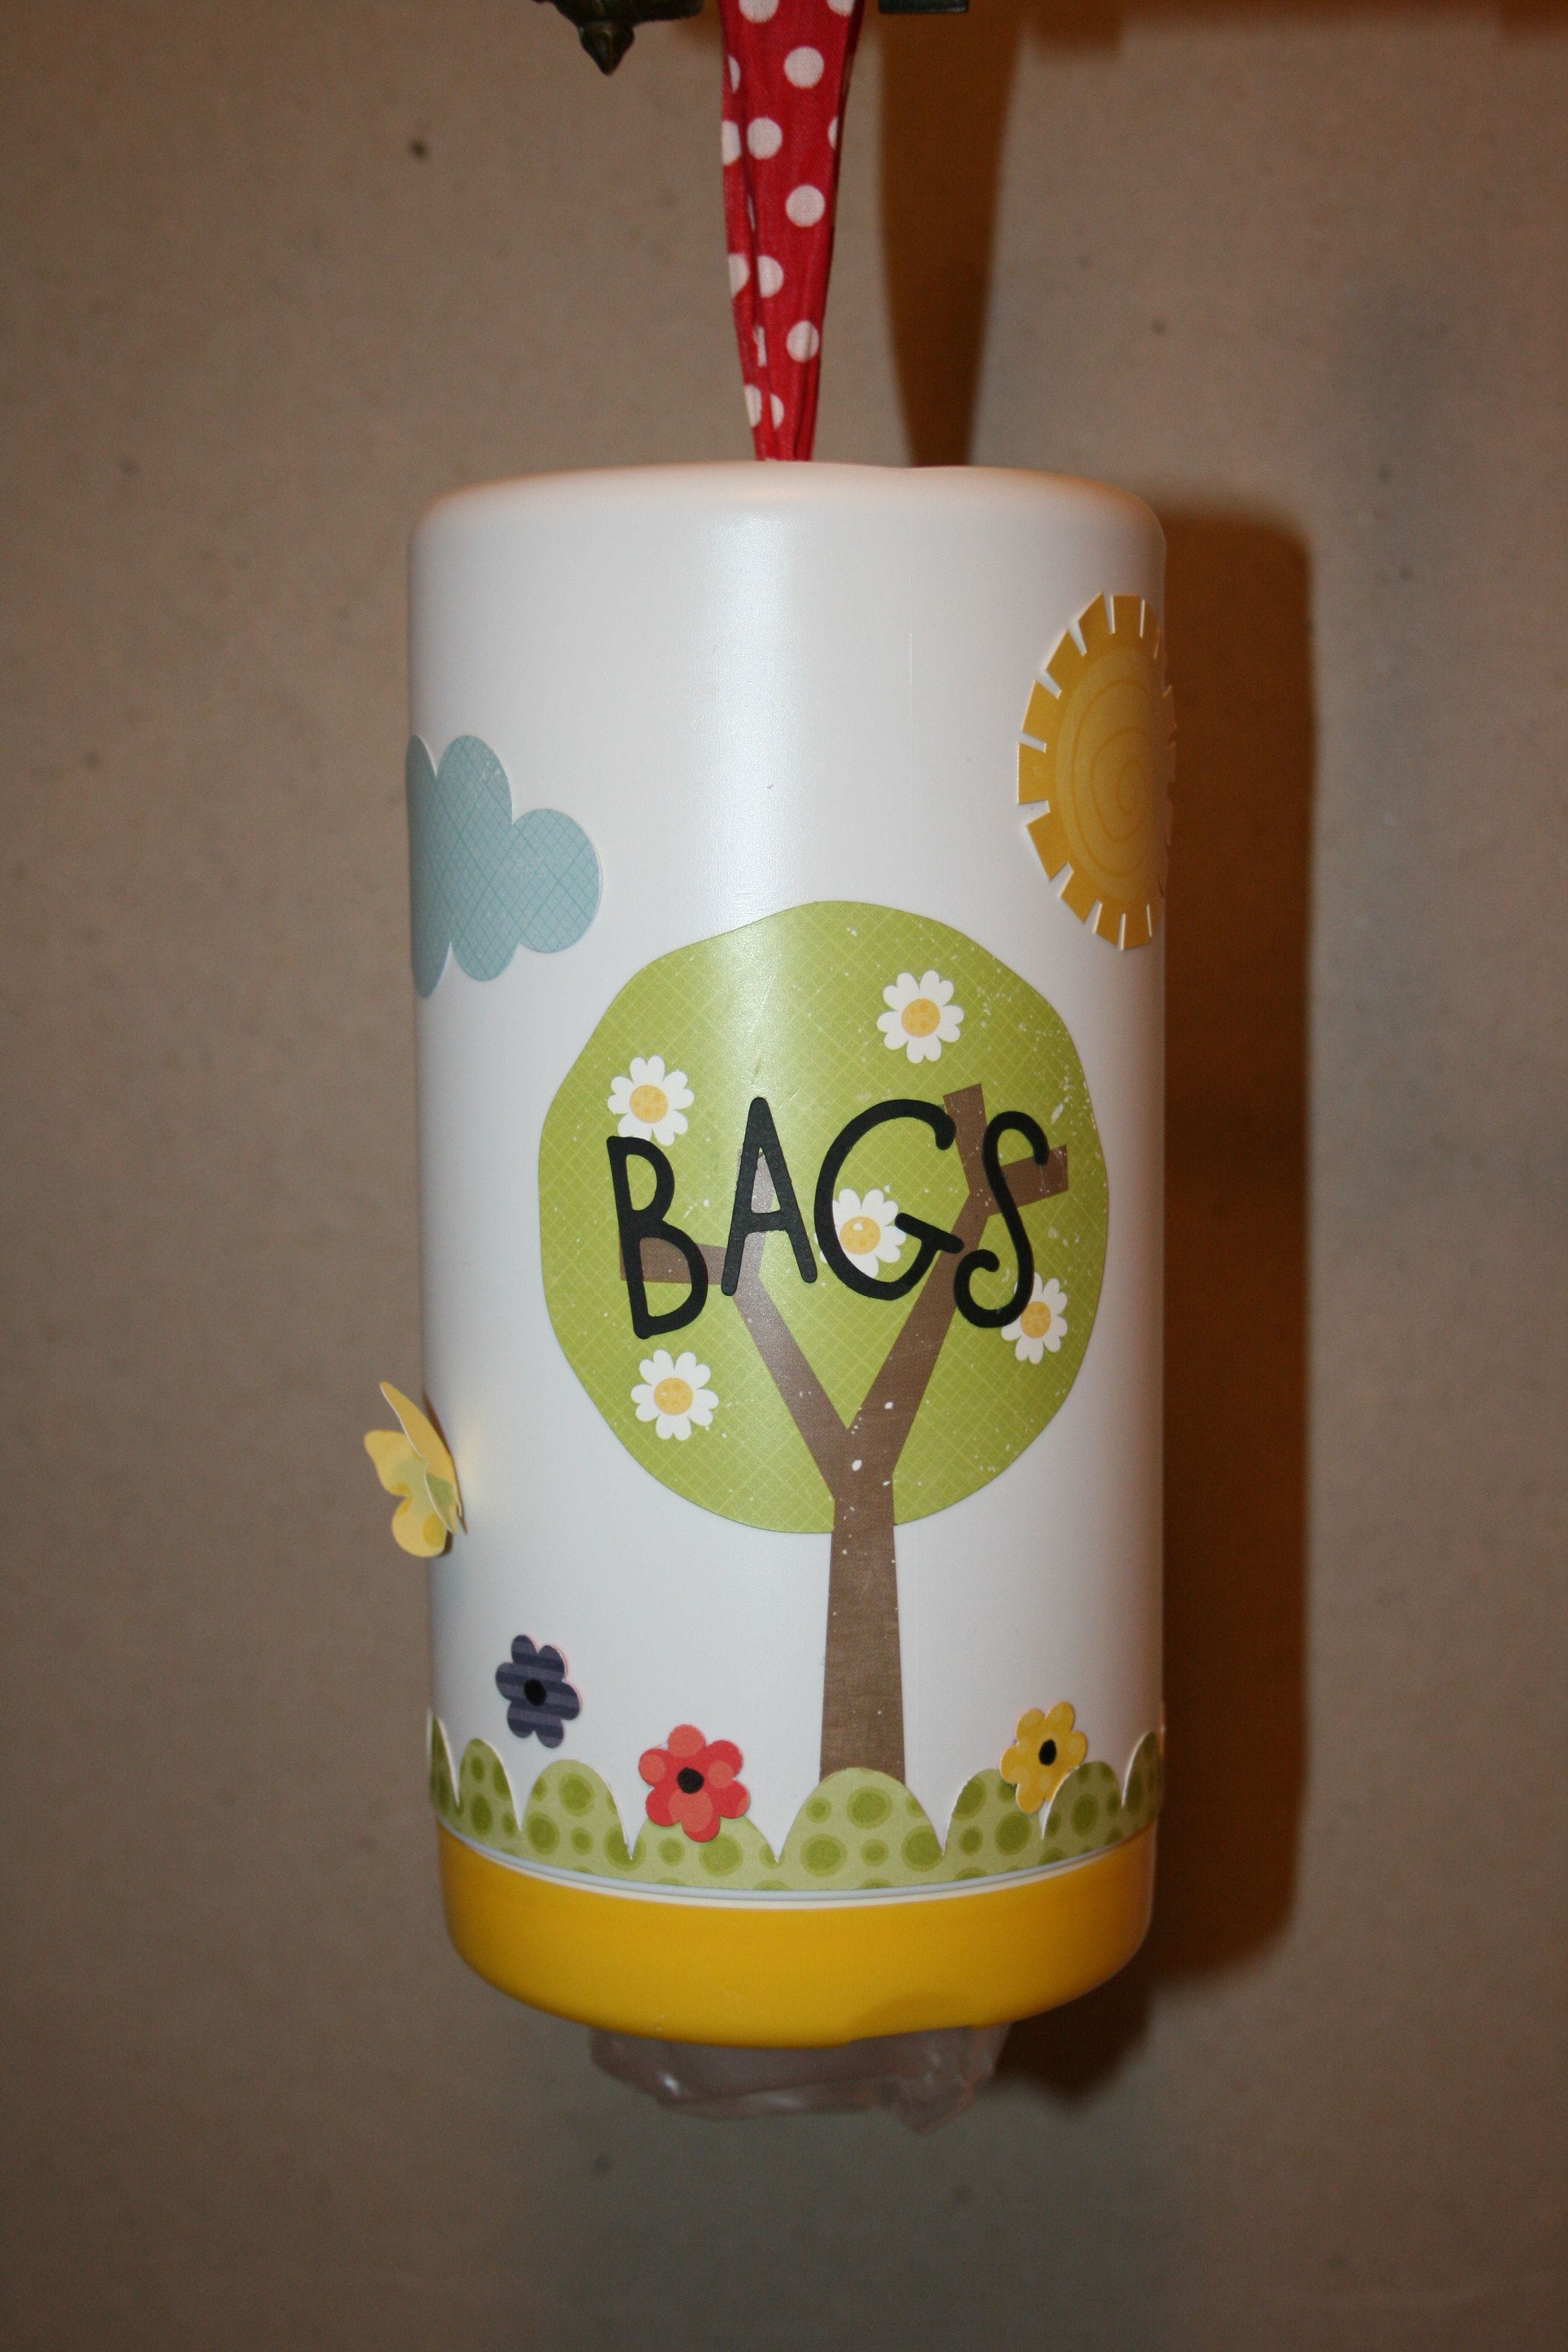 Bag holder upside down lysol container upcycled crafts